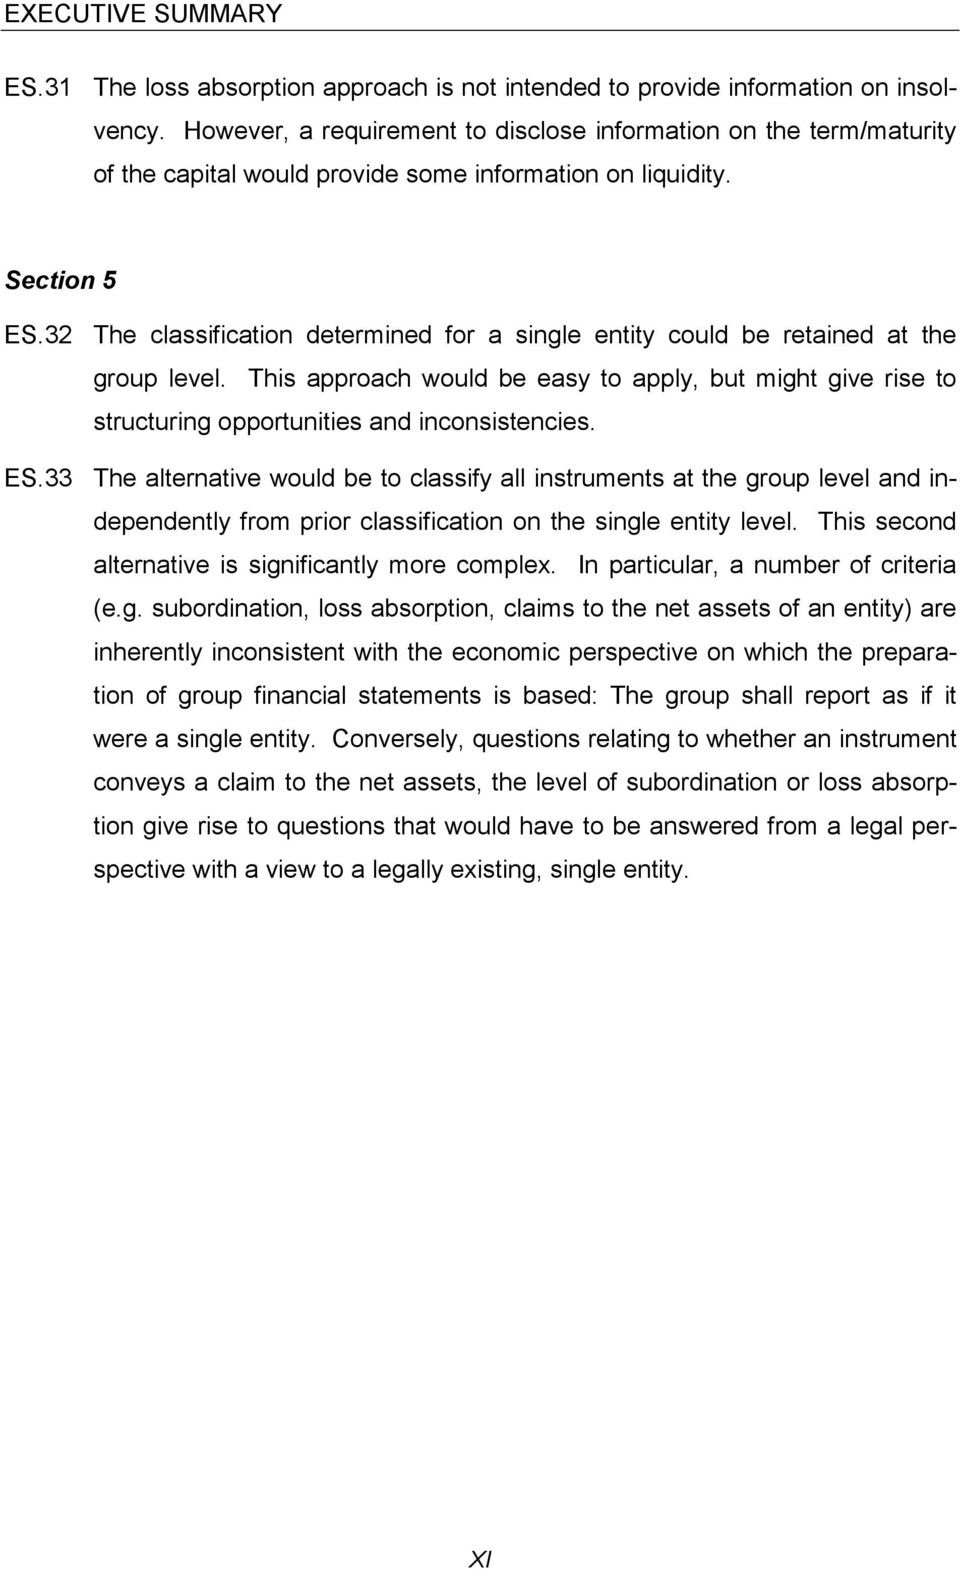 32 The classification determined for a single entity could be retained at the group level. This approach would be easy to apply, but might give rise to structuring opportunities and inconsistencies.